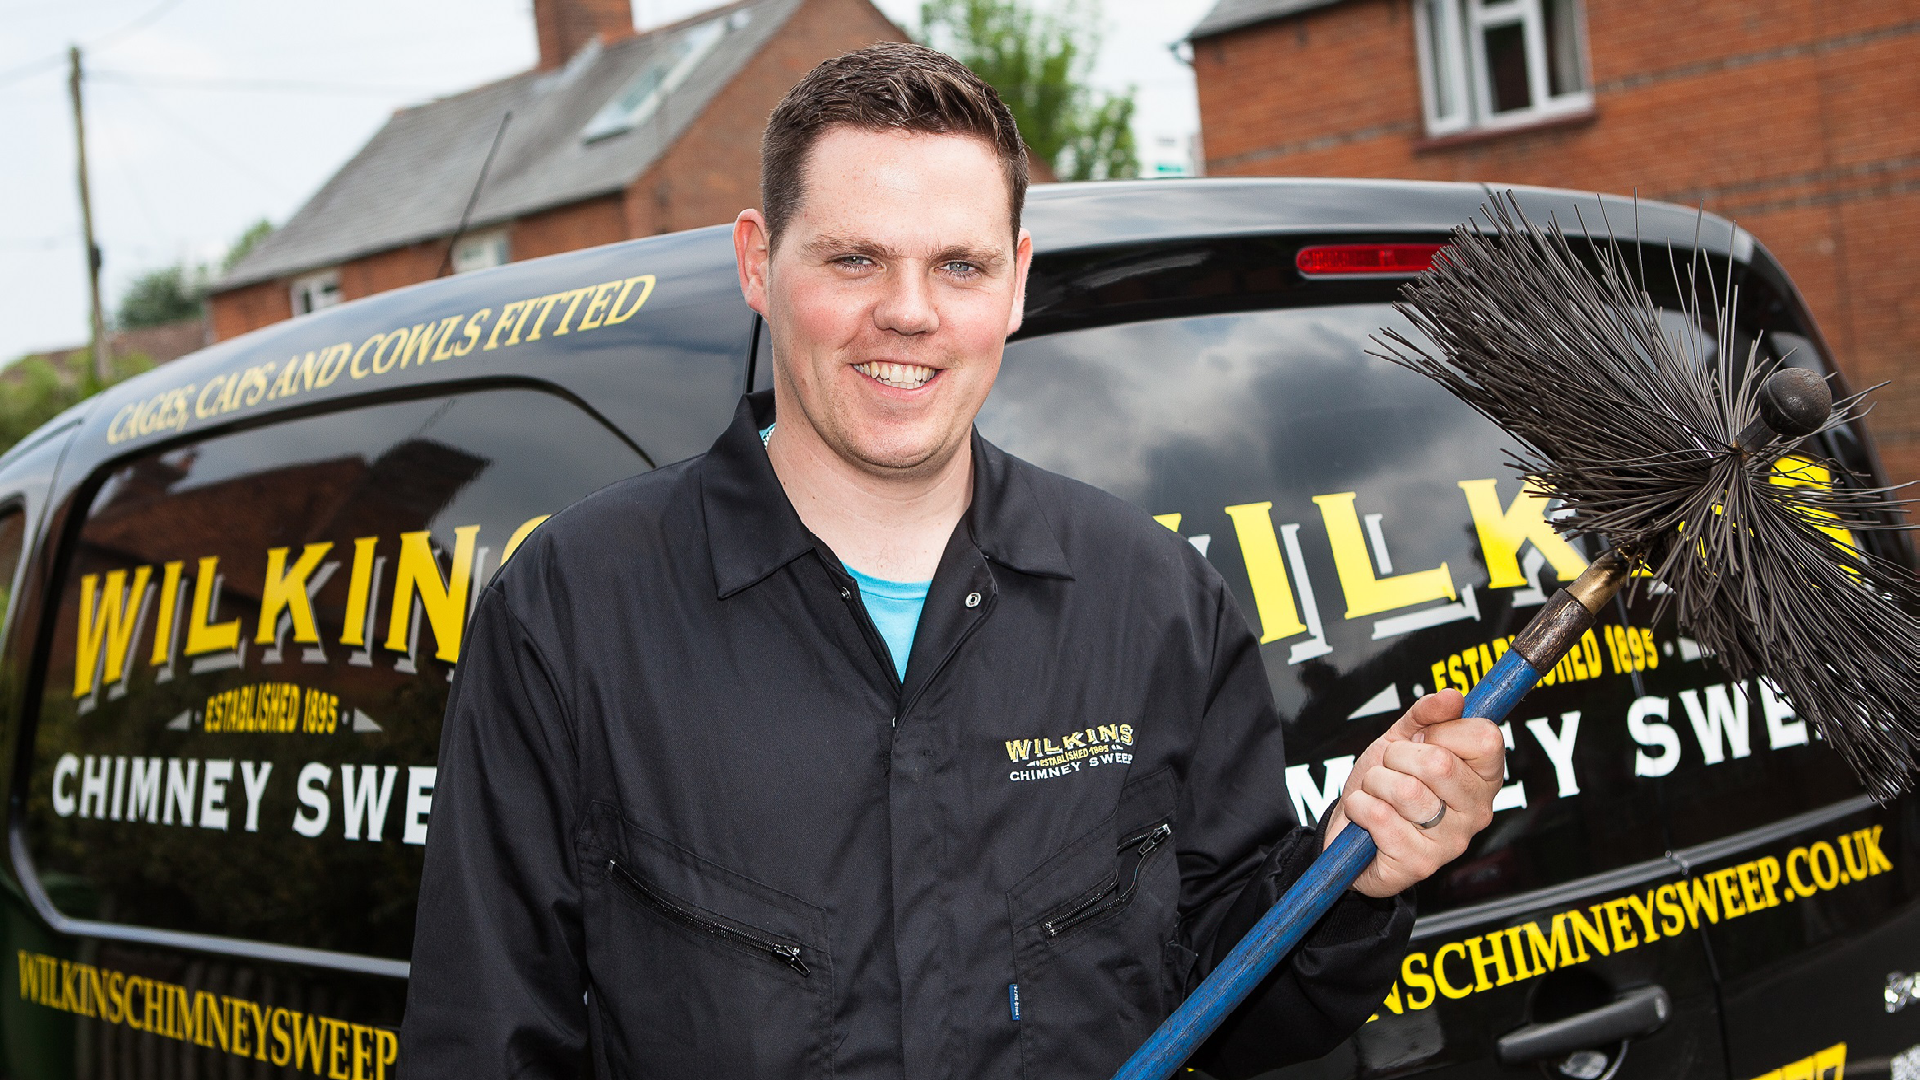 Business booms for Wilkins Chimney Sweep with new franchise sales and territory expansions across the network